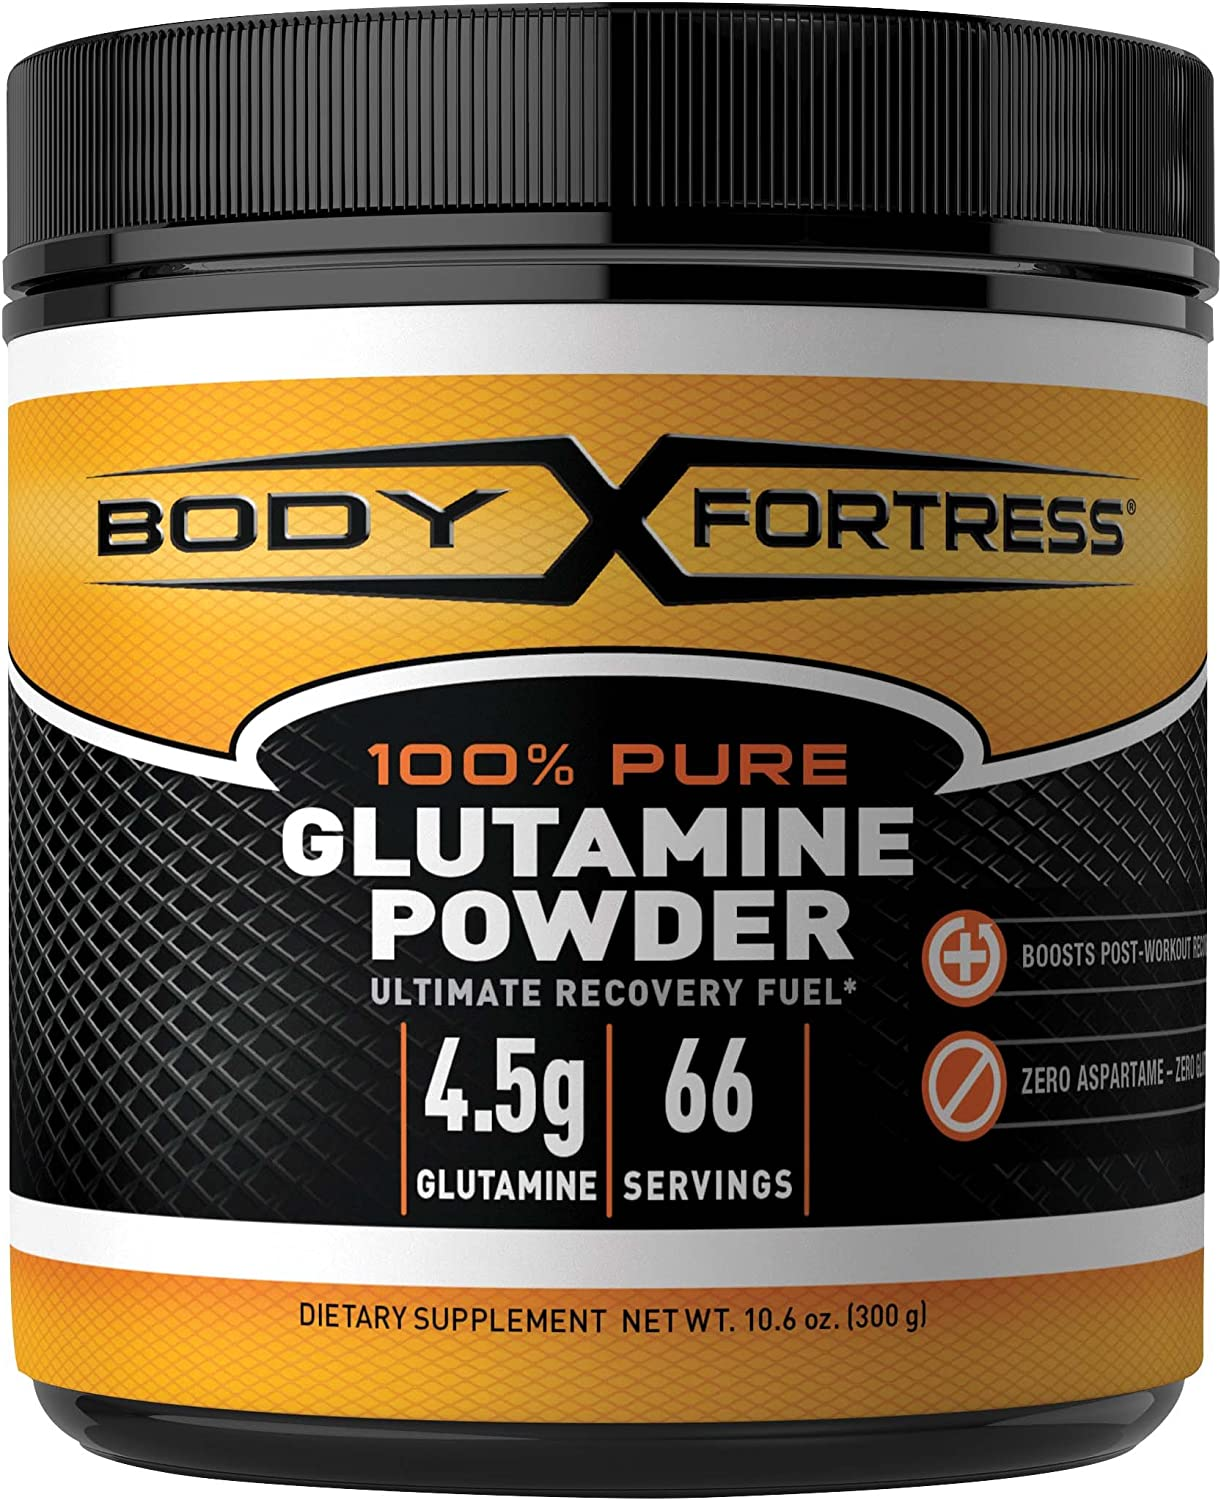 Body Fortress 100% Pure Glutamine Powder, Supports Post Workout Recovery, 10.6 oz: Health & Personal Care